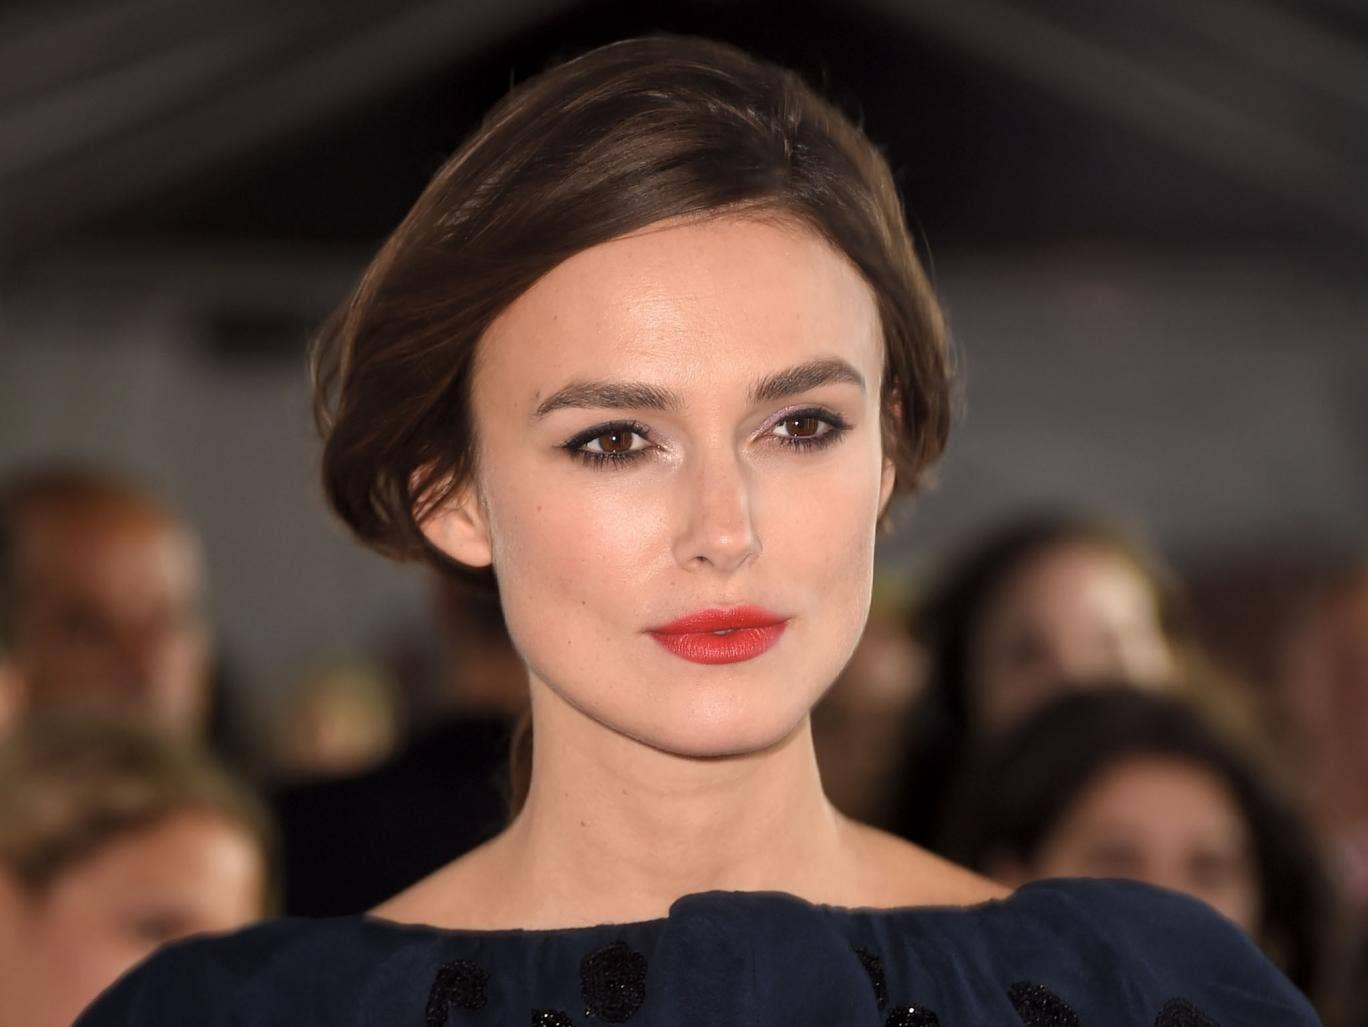 Keira Knightley at the premiere of Laggie at Toronto Film Festival 2014 - Keira-Knightley-Getty